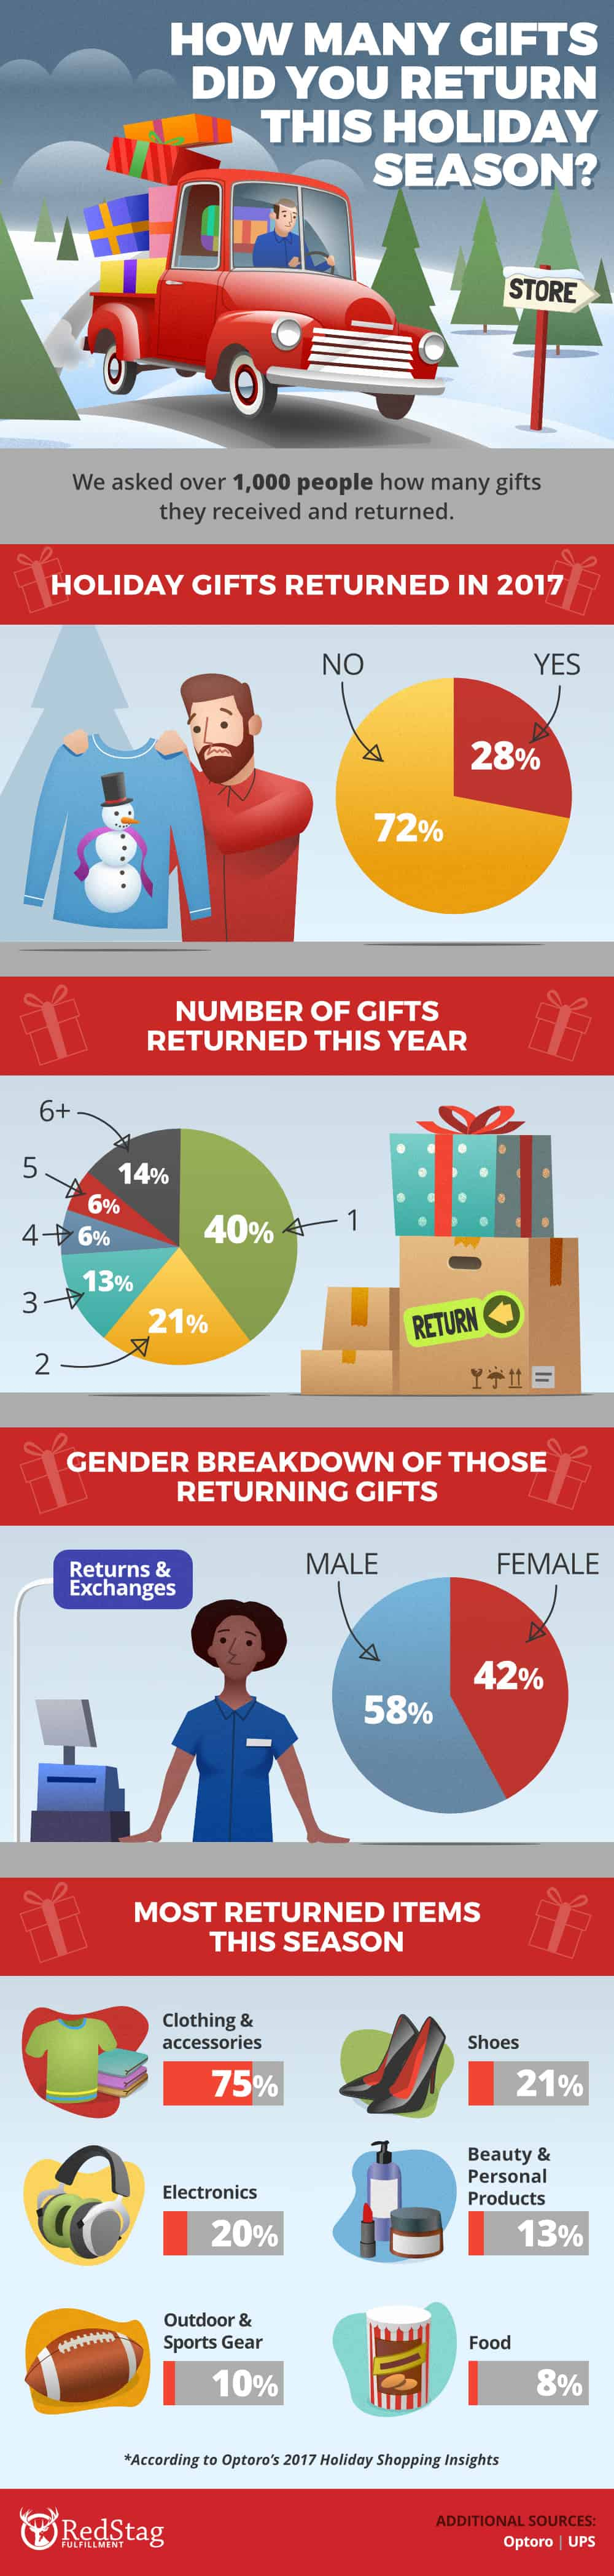 Who Returned Gifts This Year